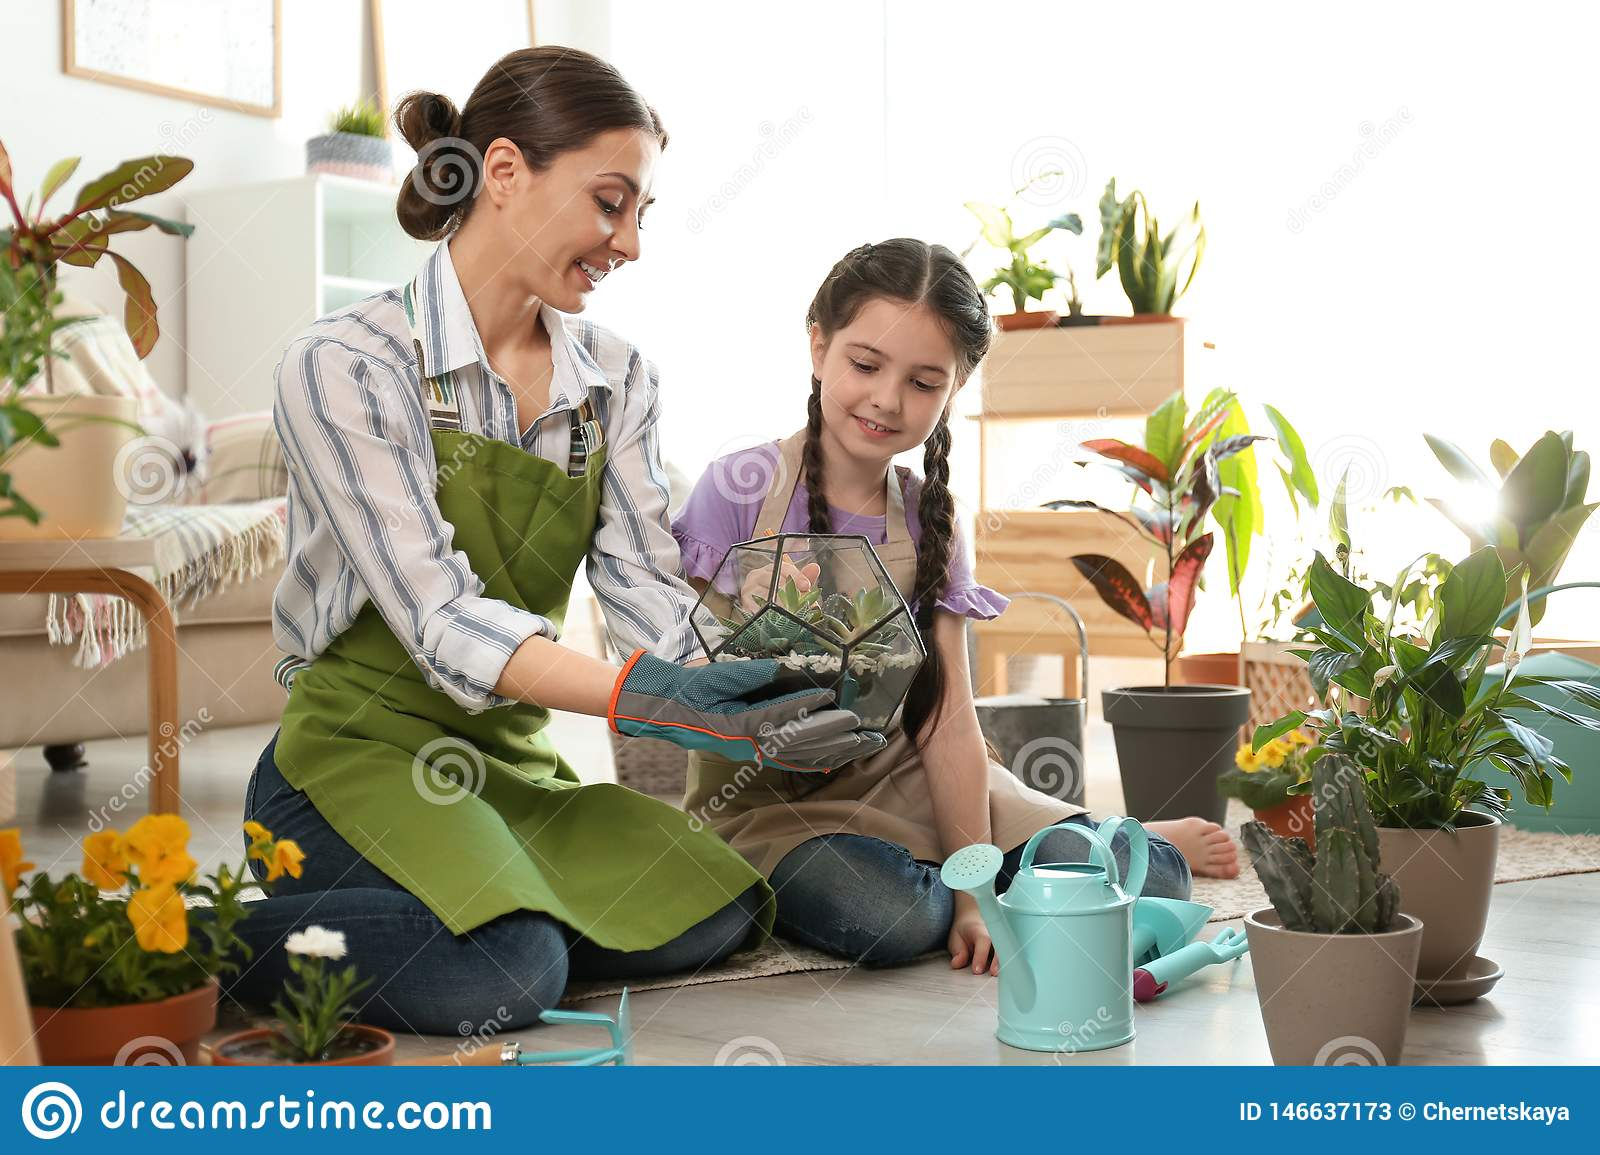 Download Mother And Daughter Taking Care Of Plants On Floor Stock ...